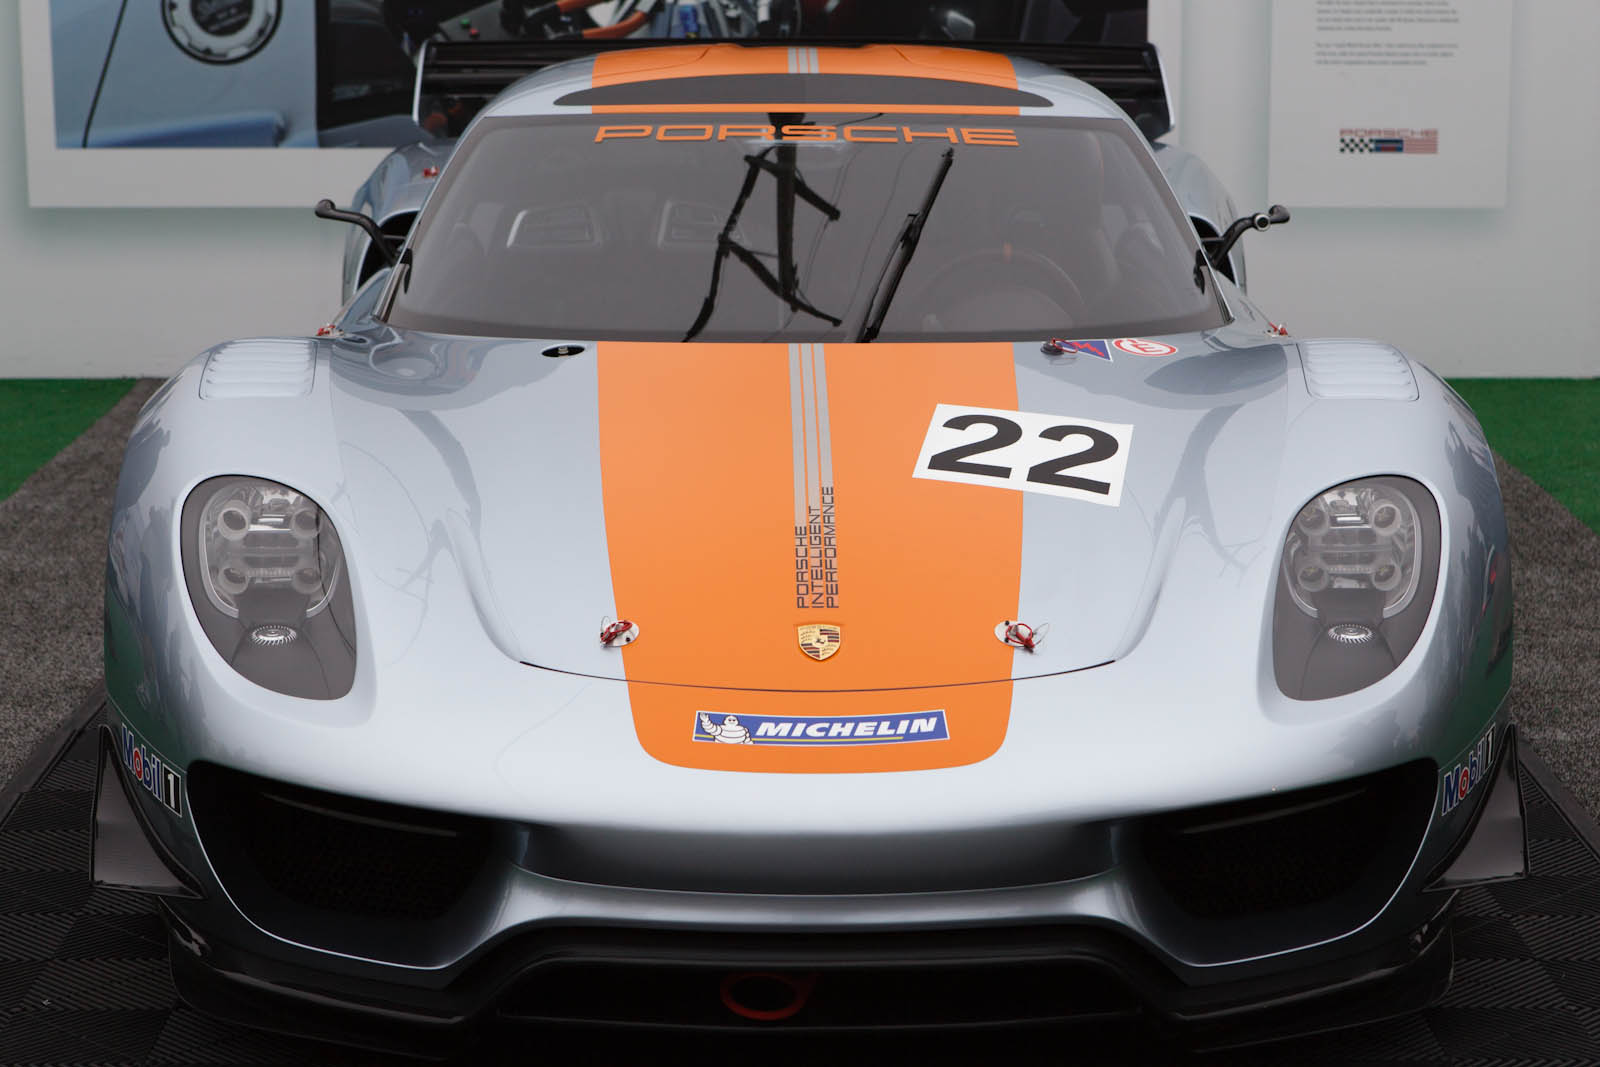 File Porsche 918 Rsr Front View At The Porsche Rennsport Reunion Iv In 2011 Jpg Wikimedia Commons